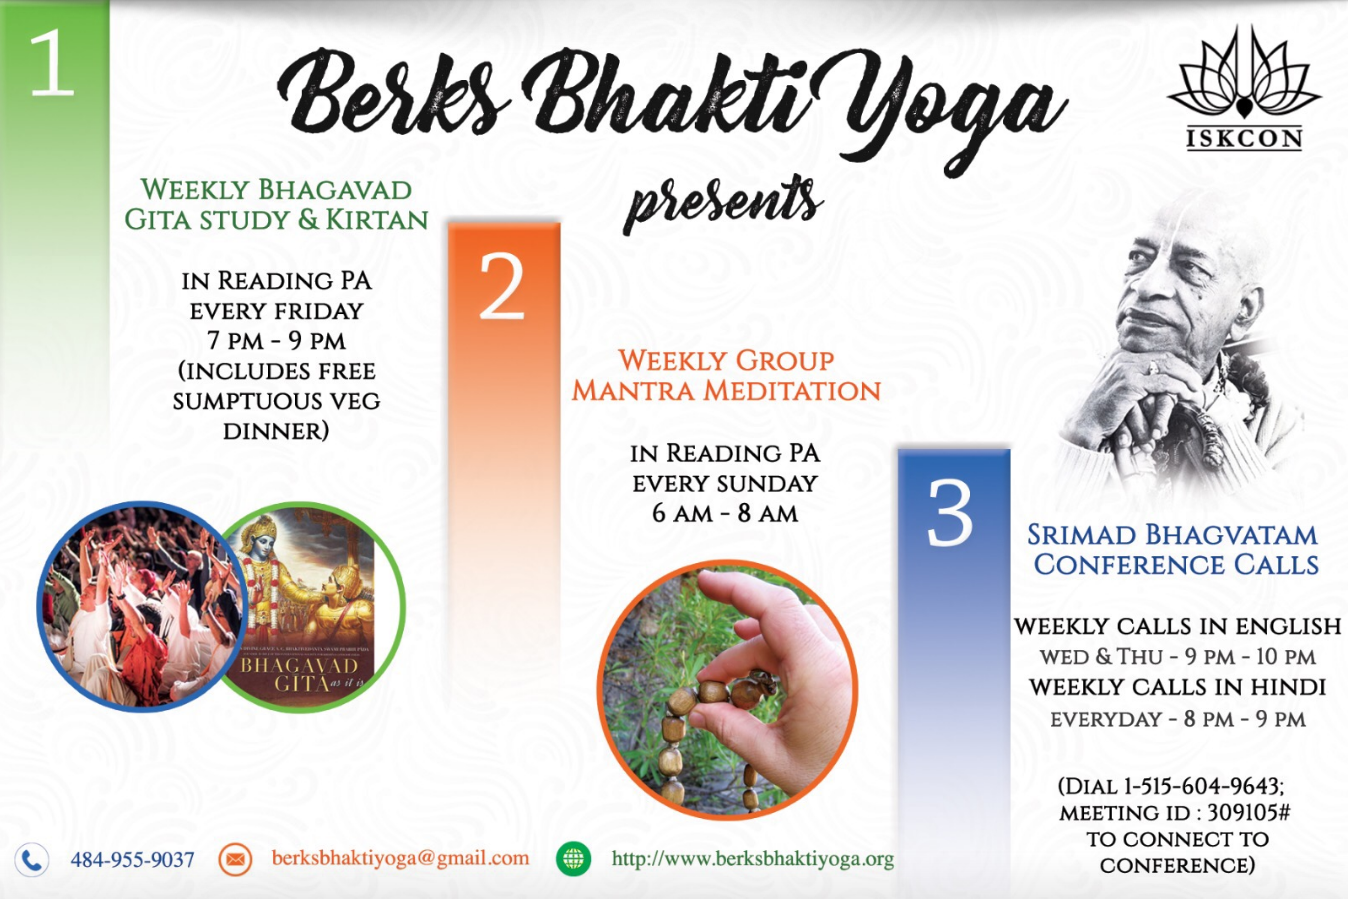 Weekly Spiritual Program (Kirtan, Bhagvat Gita Study, Mantra Meditation) in Reading @7pm